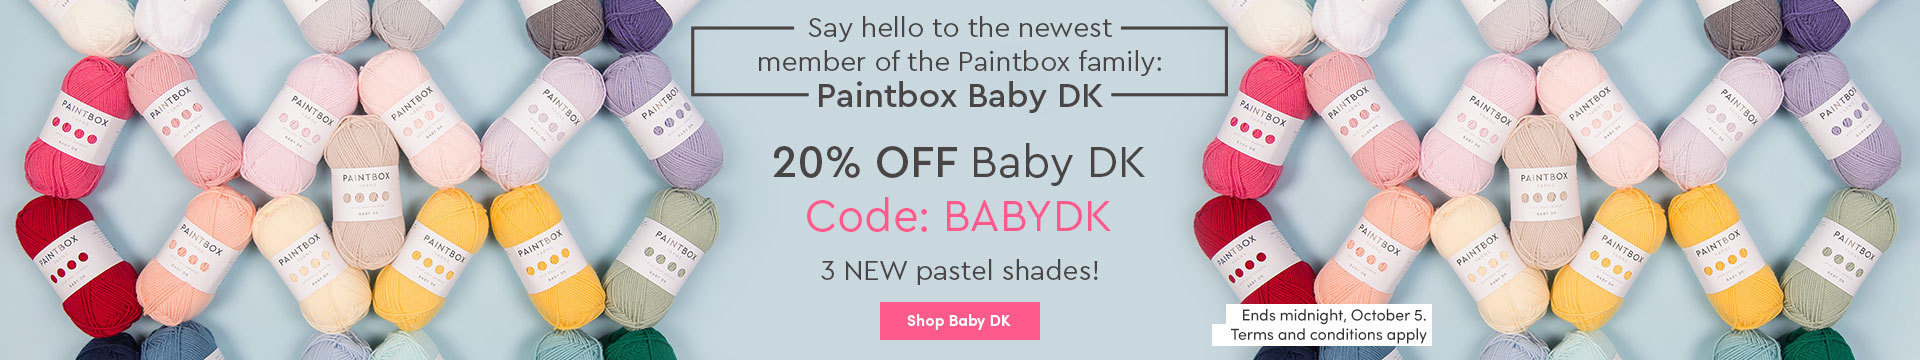 LC Marketing - Oct 17 Paintbox Baby DK NA